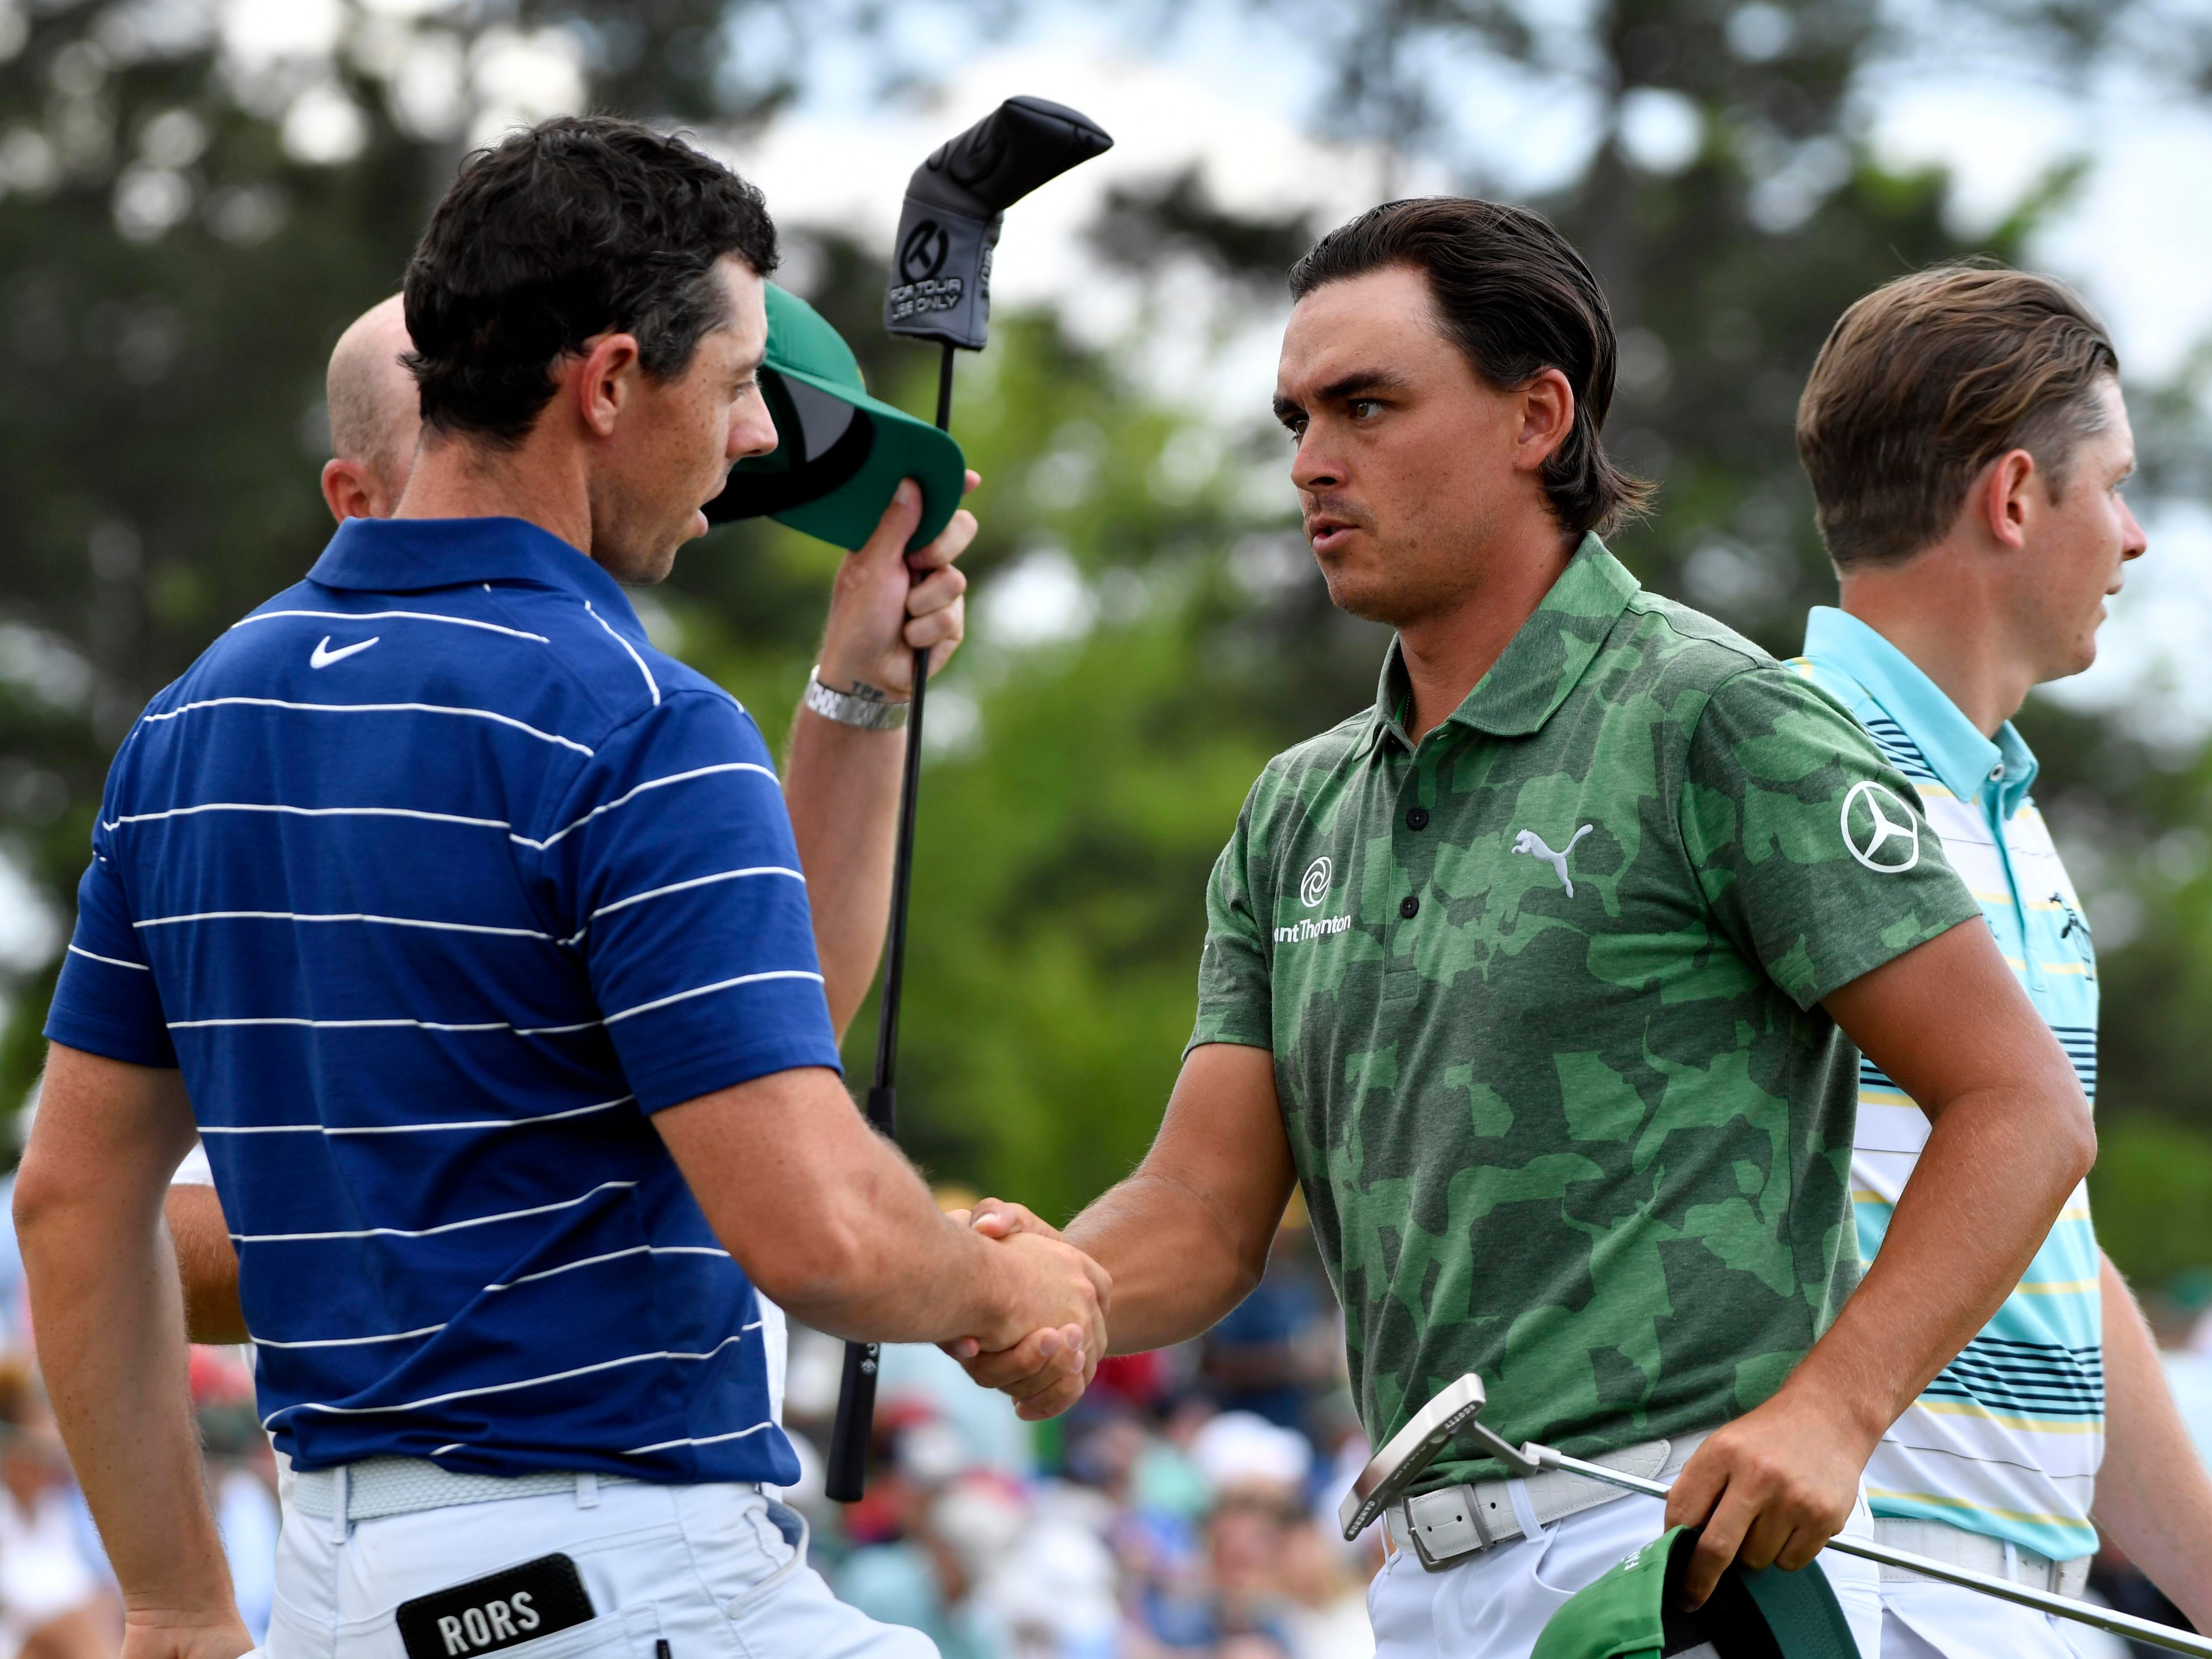 Apr 11, 2019; Augusta, GA, USA; Rickie Fowler (right) and Rory McIlroy (left) shake hands on the 18th green during the first round of The Masters golf tournament at Augusta National Golf Club.